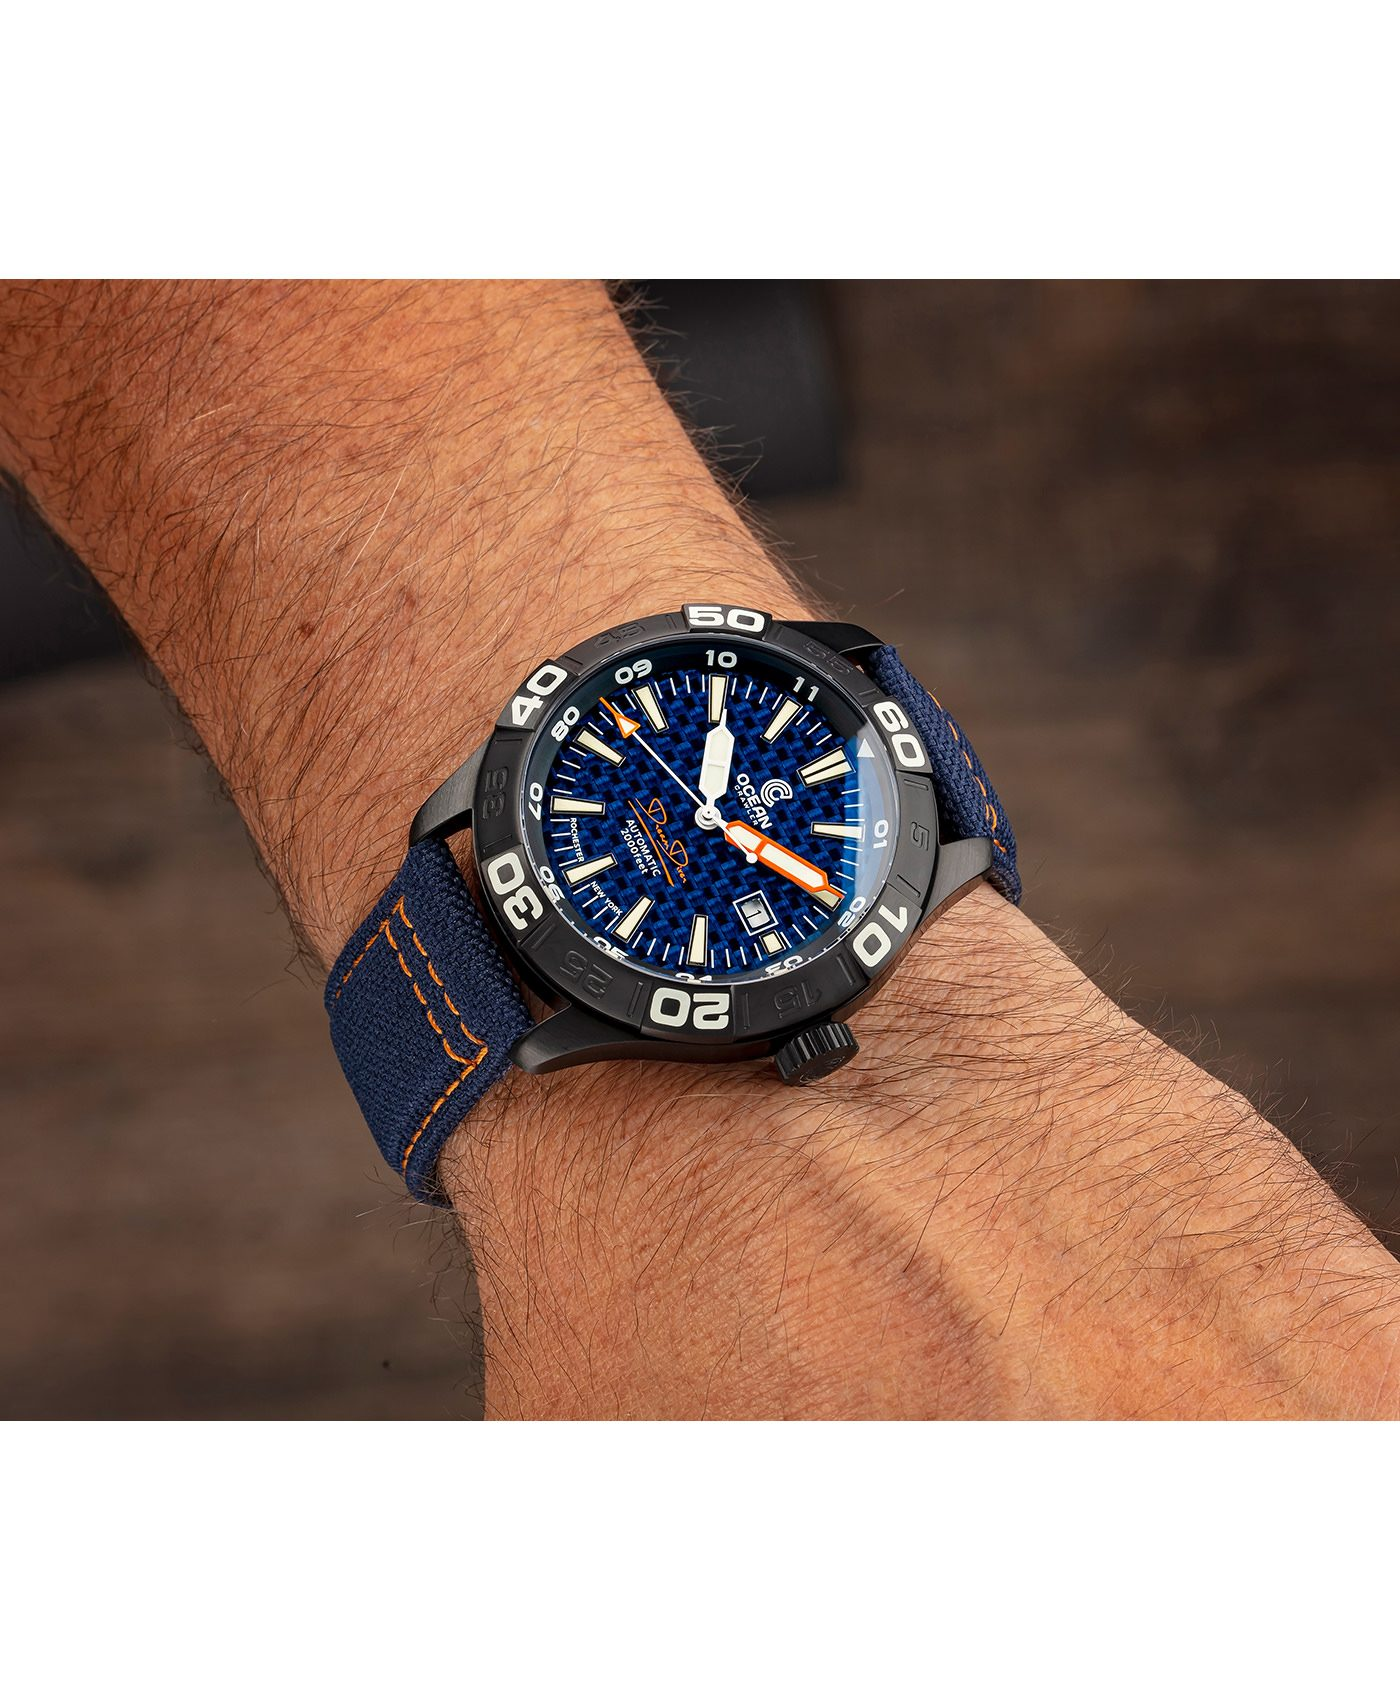 WB Ocean Crawler Dream Diver Blue Carbon Fiber DLC wrist